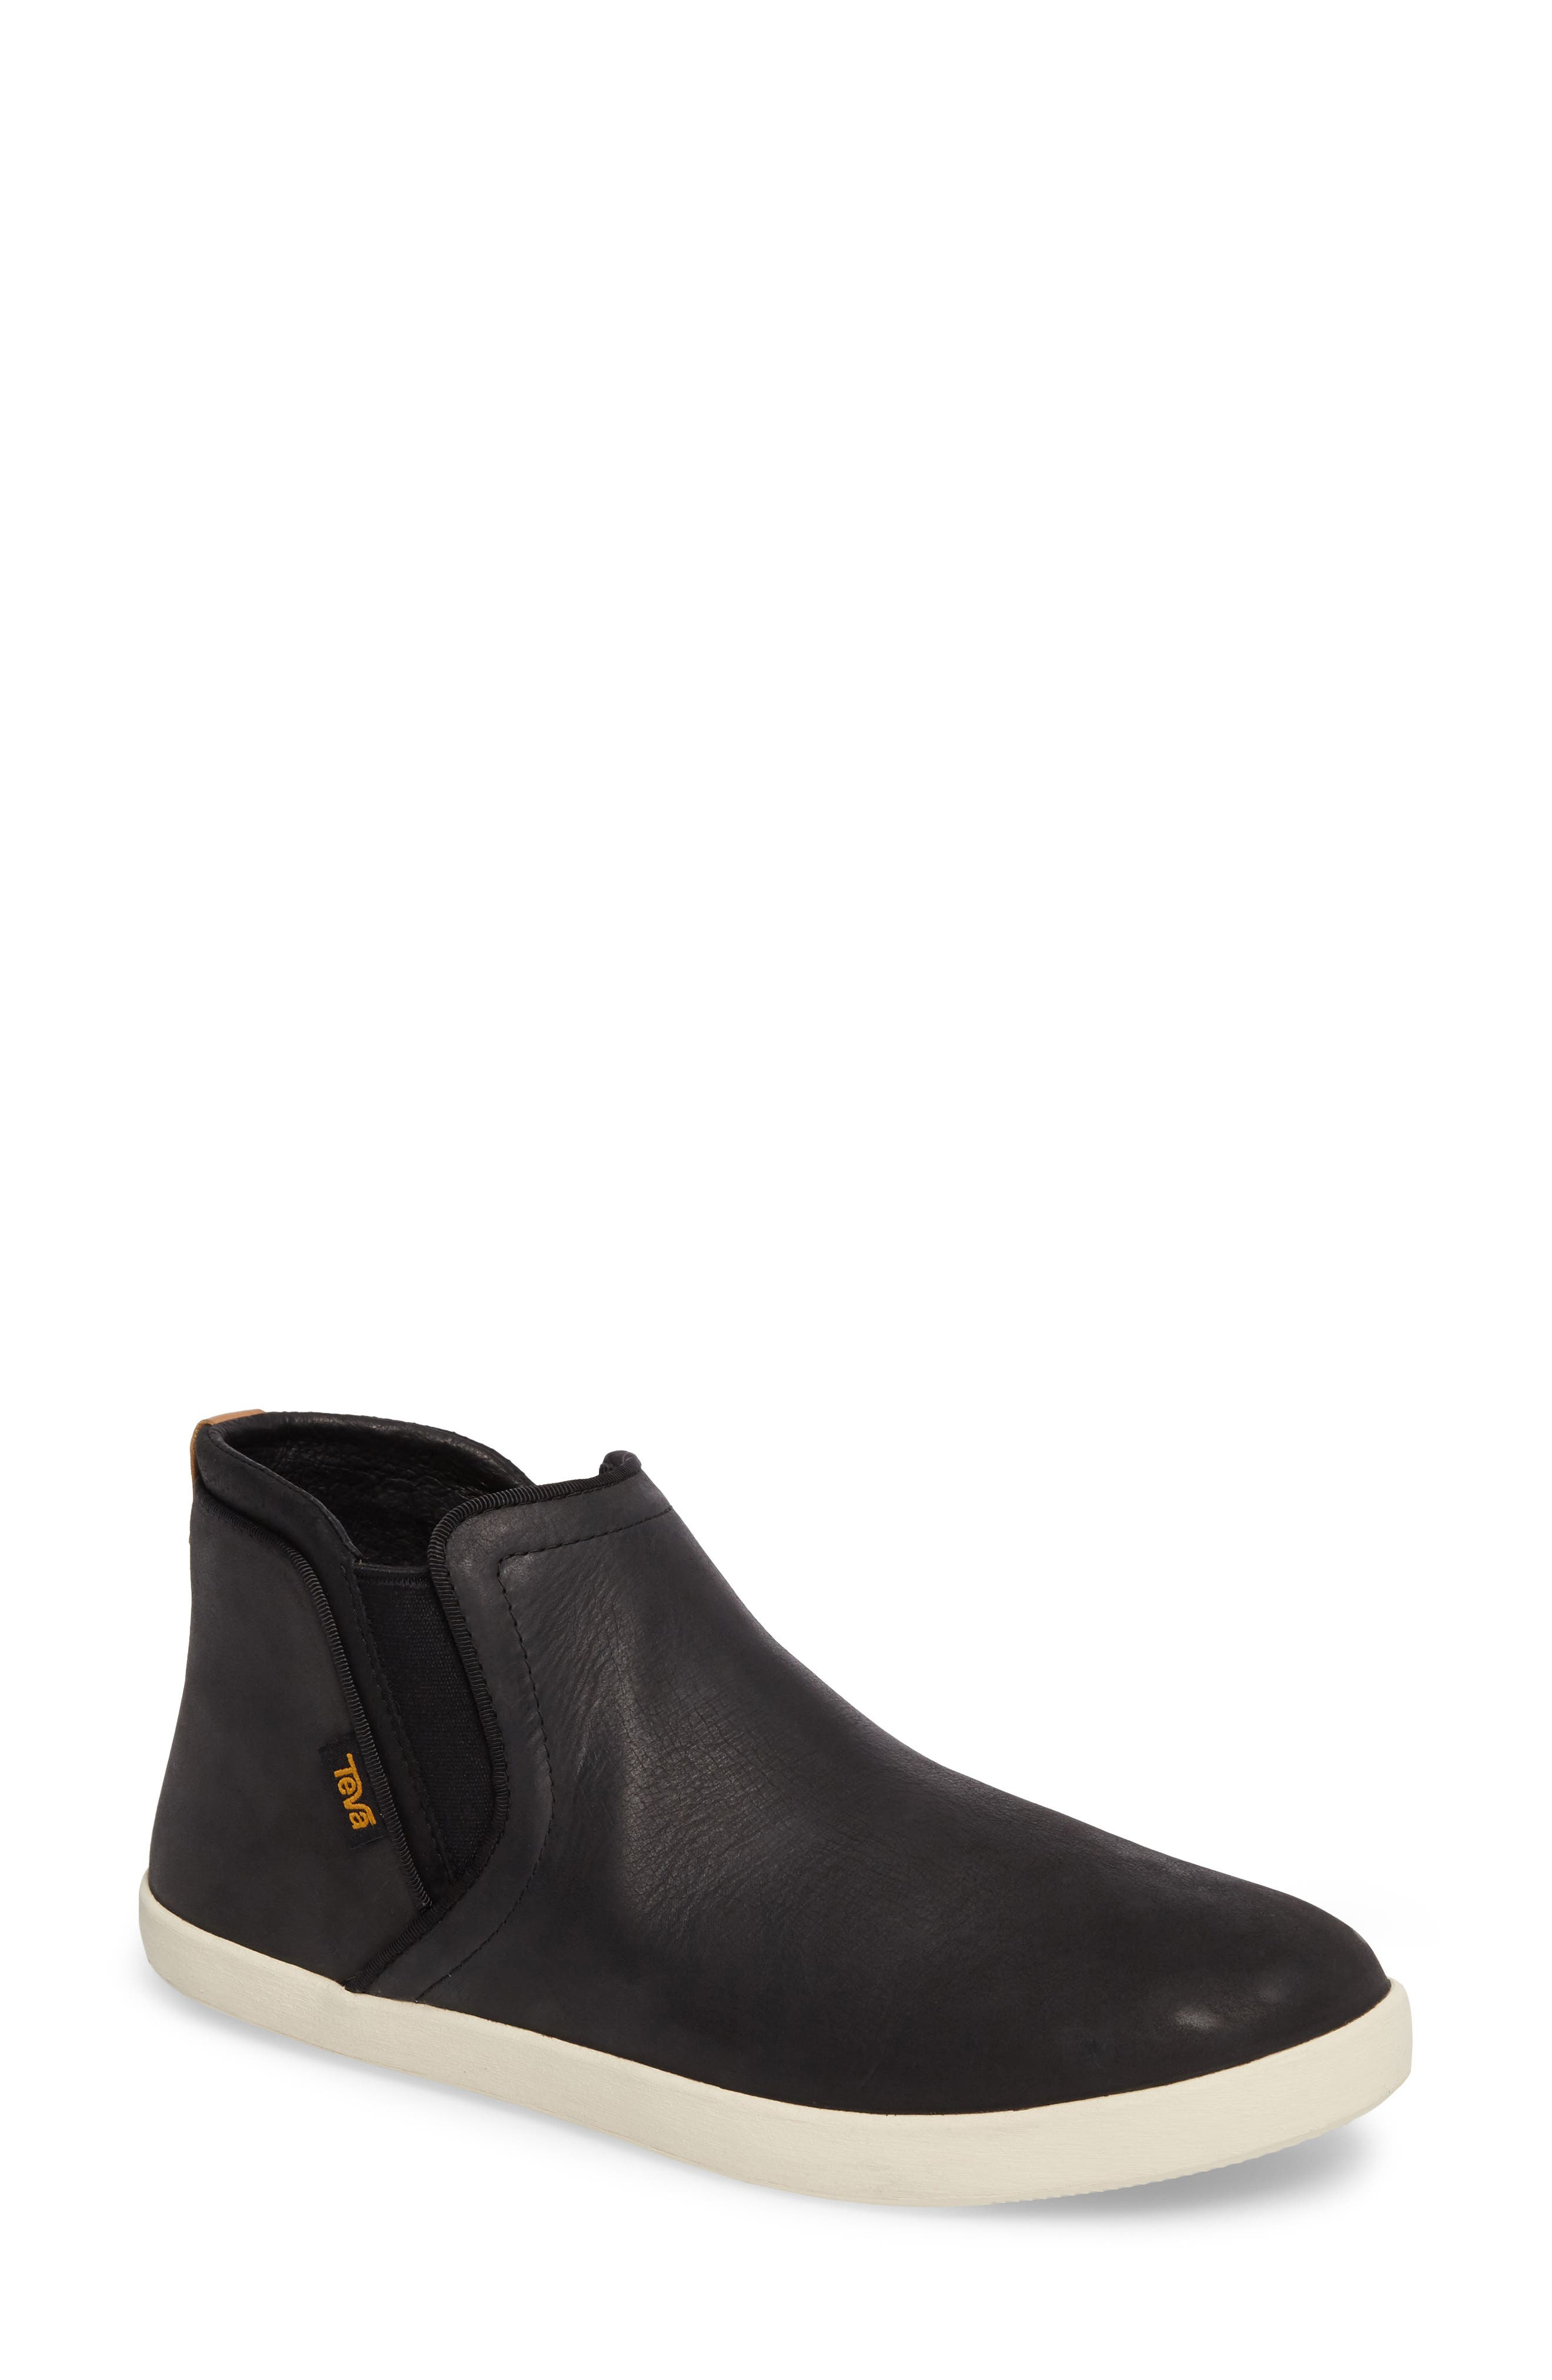 Willow Chelsea Sneaker,                         Main,                         color, 001